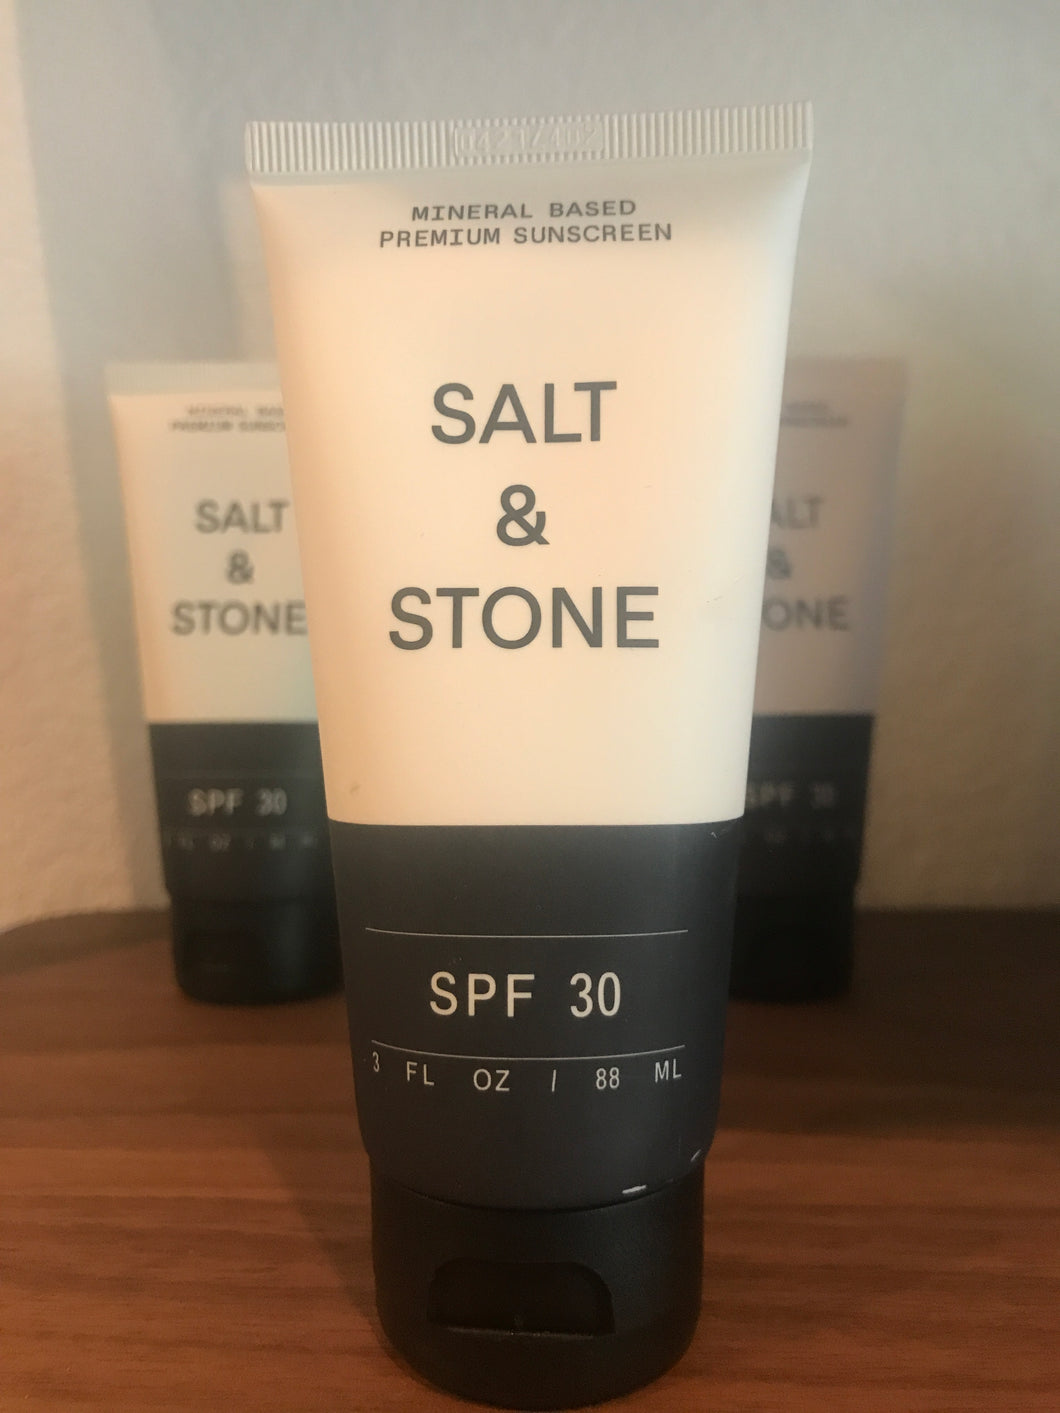 Salt and Stone mineral sunscreen lotion